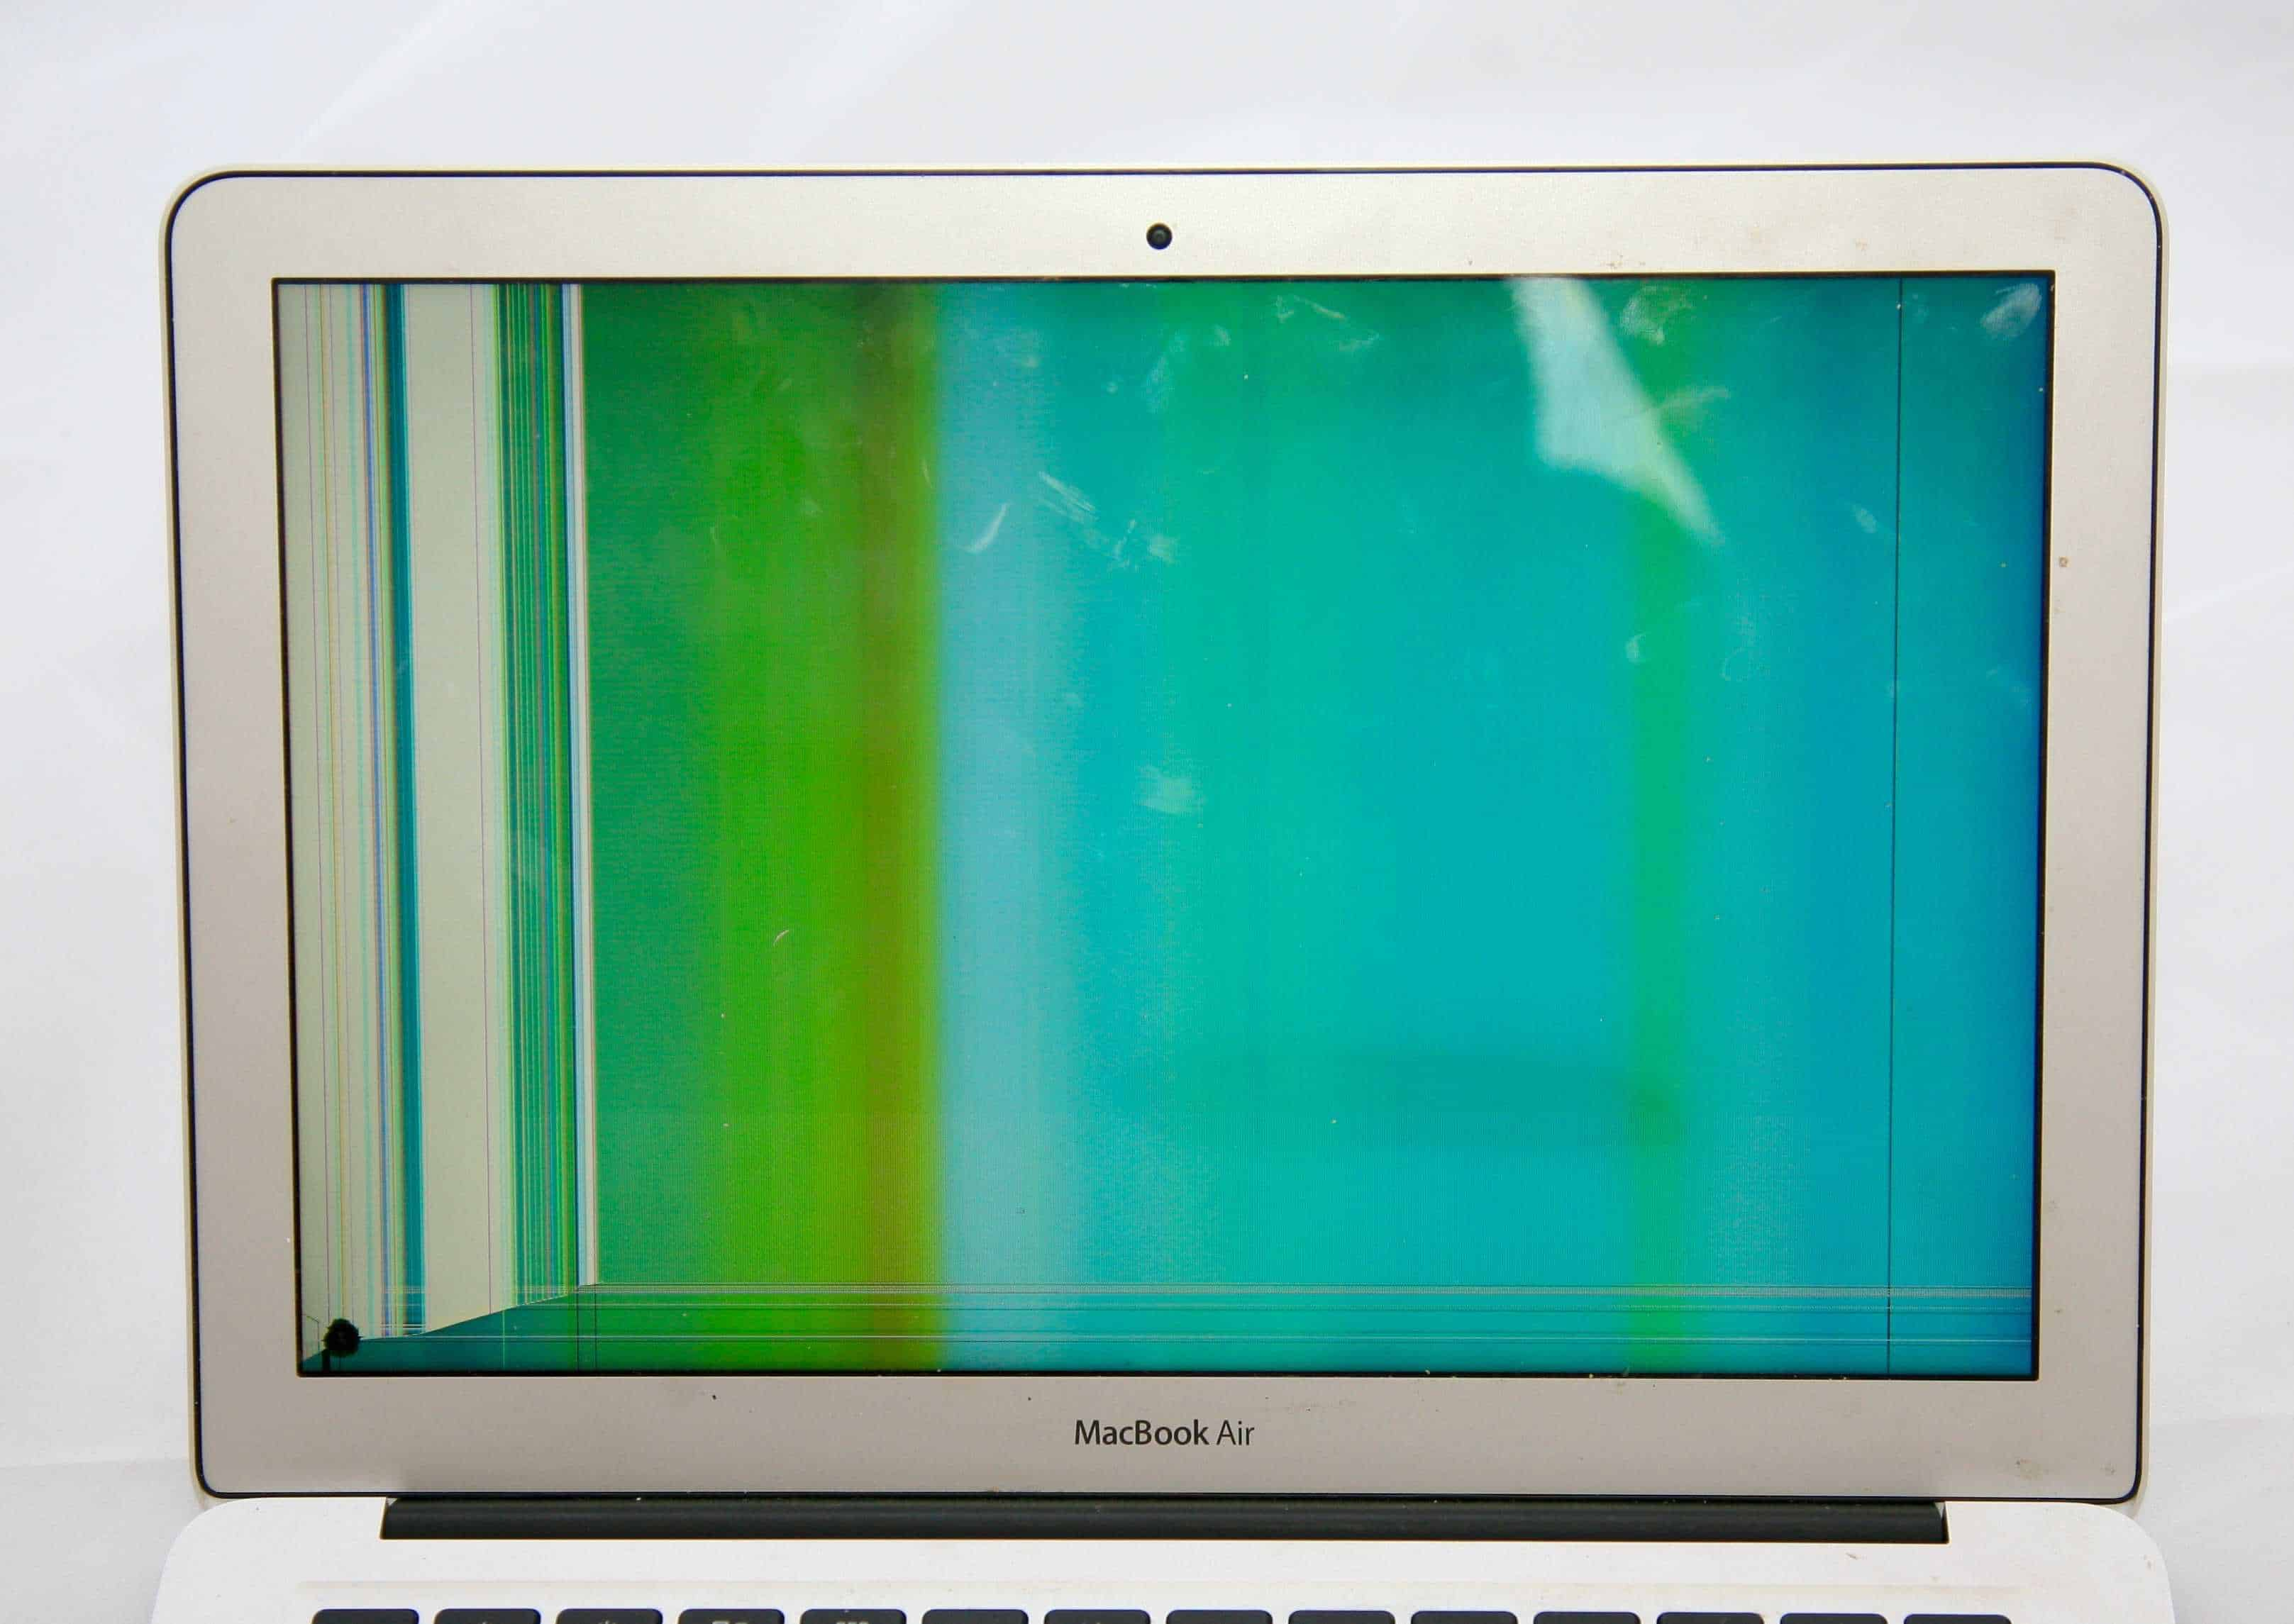 MacBook Display with Damaged LCD Panel. You can add an external monitor to bypass this screen.